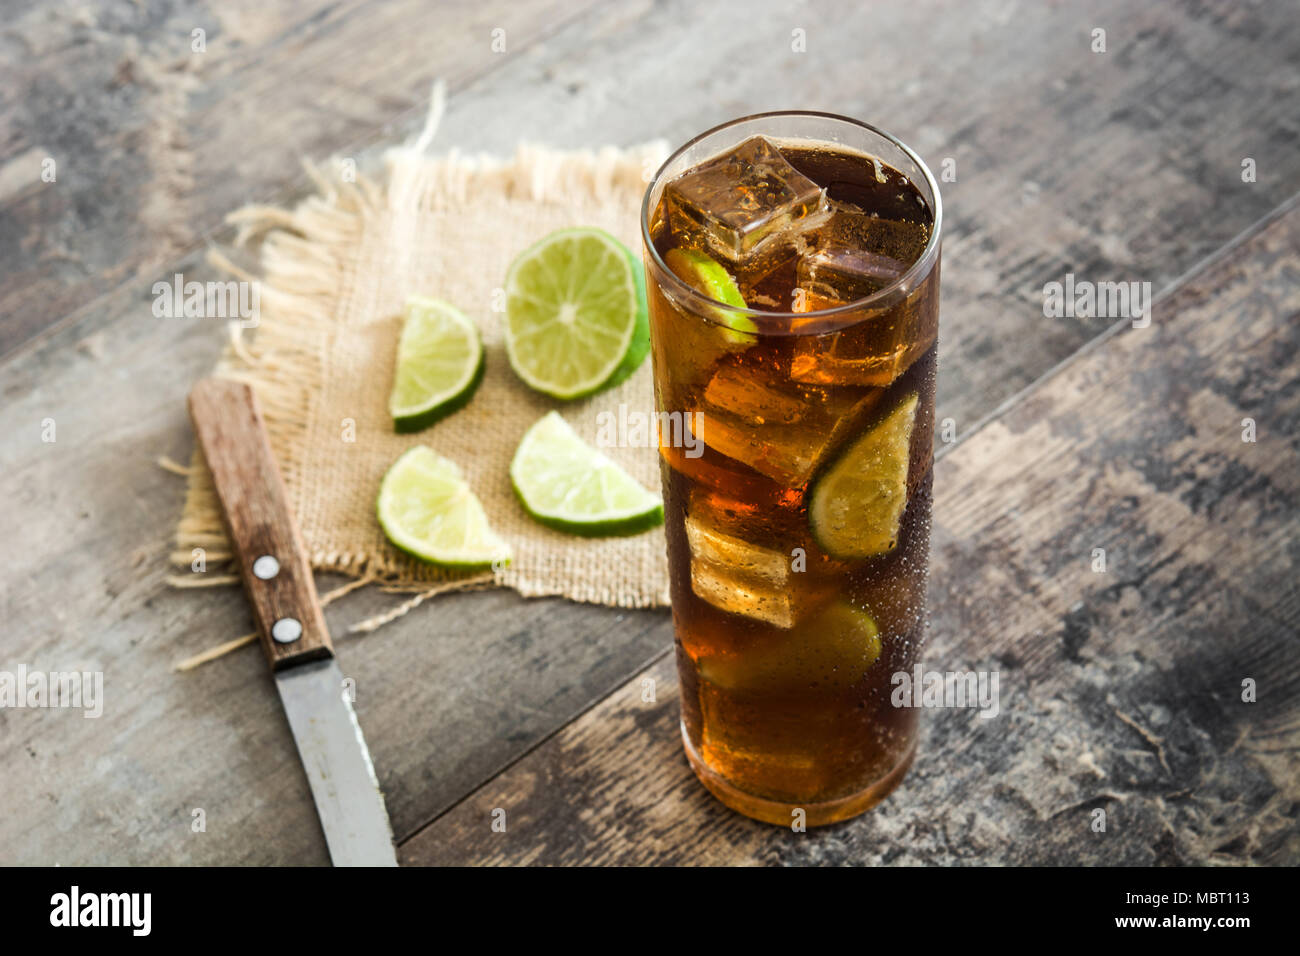 Cuba libre. Cocktail with rum, lime and ice on wooden table - Stock Image